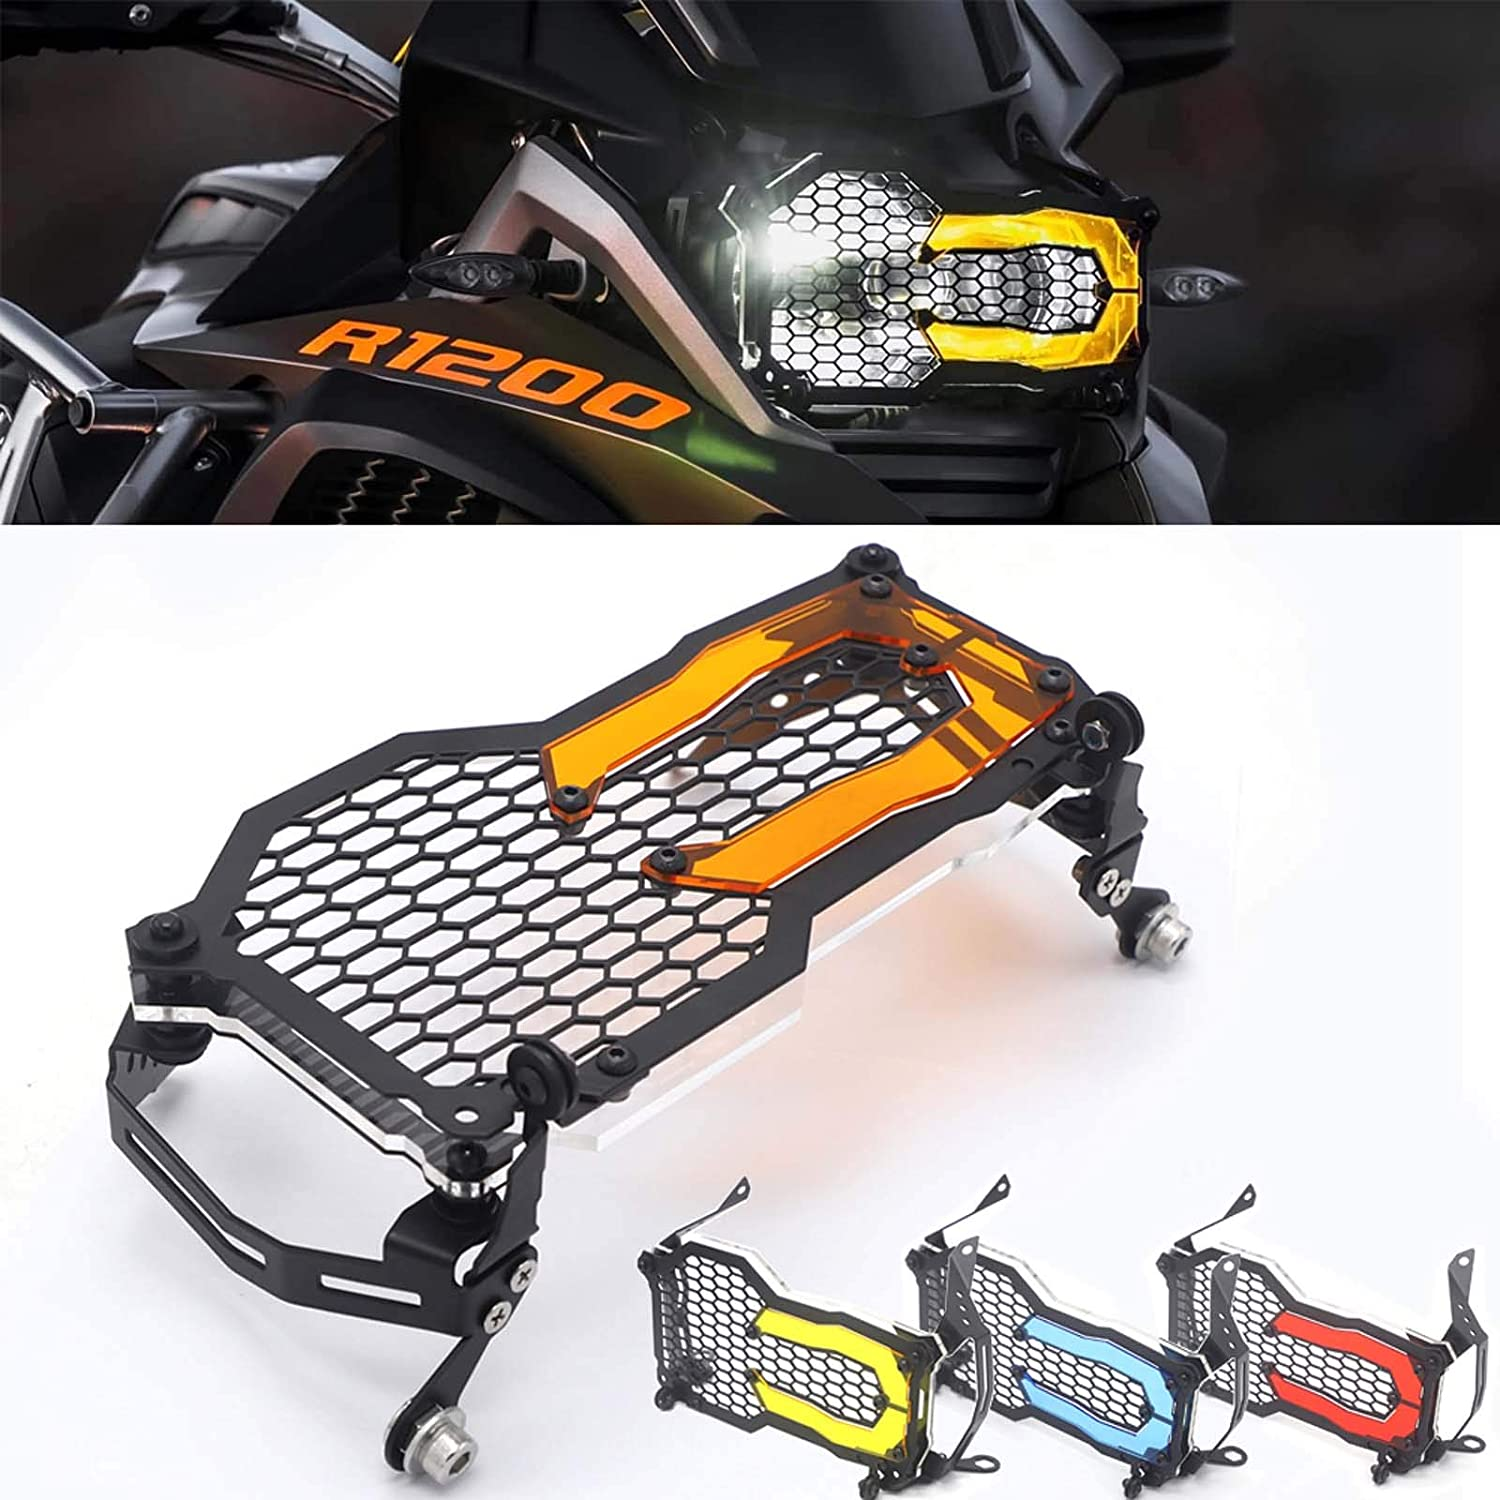 For BMW R1200GS R1250GS Motorcycle Headlight Guard Protector Grille Grill Cover R 1250 GS Adventure R 1200 GS ADV//LC Acrylic Lamp Patch